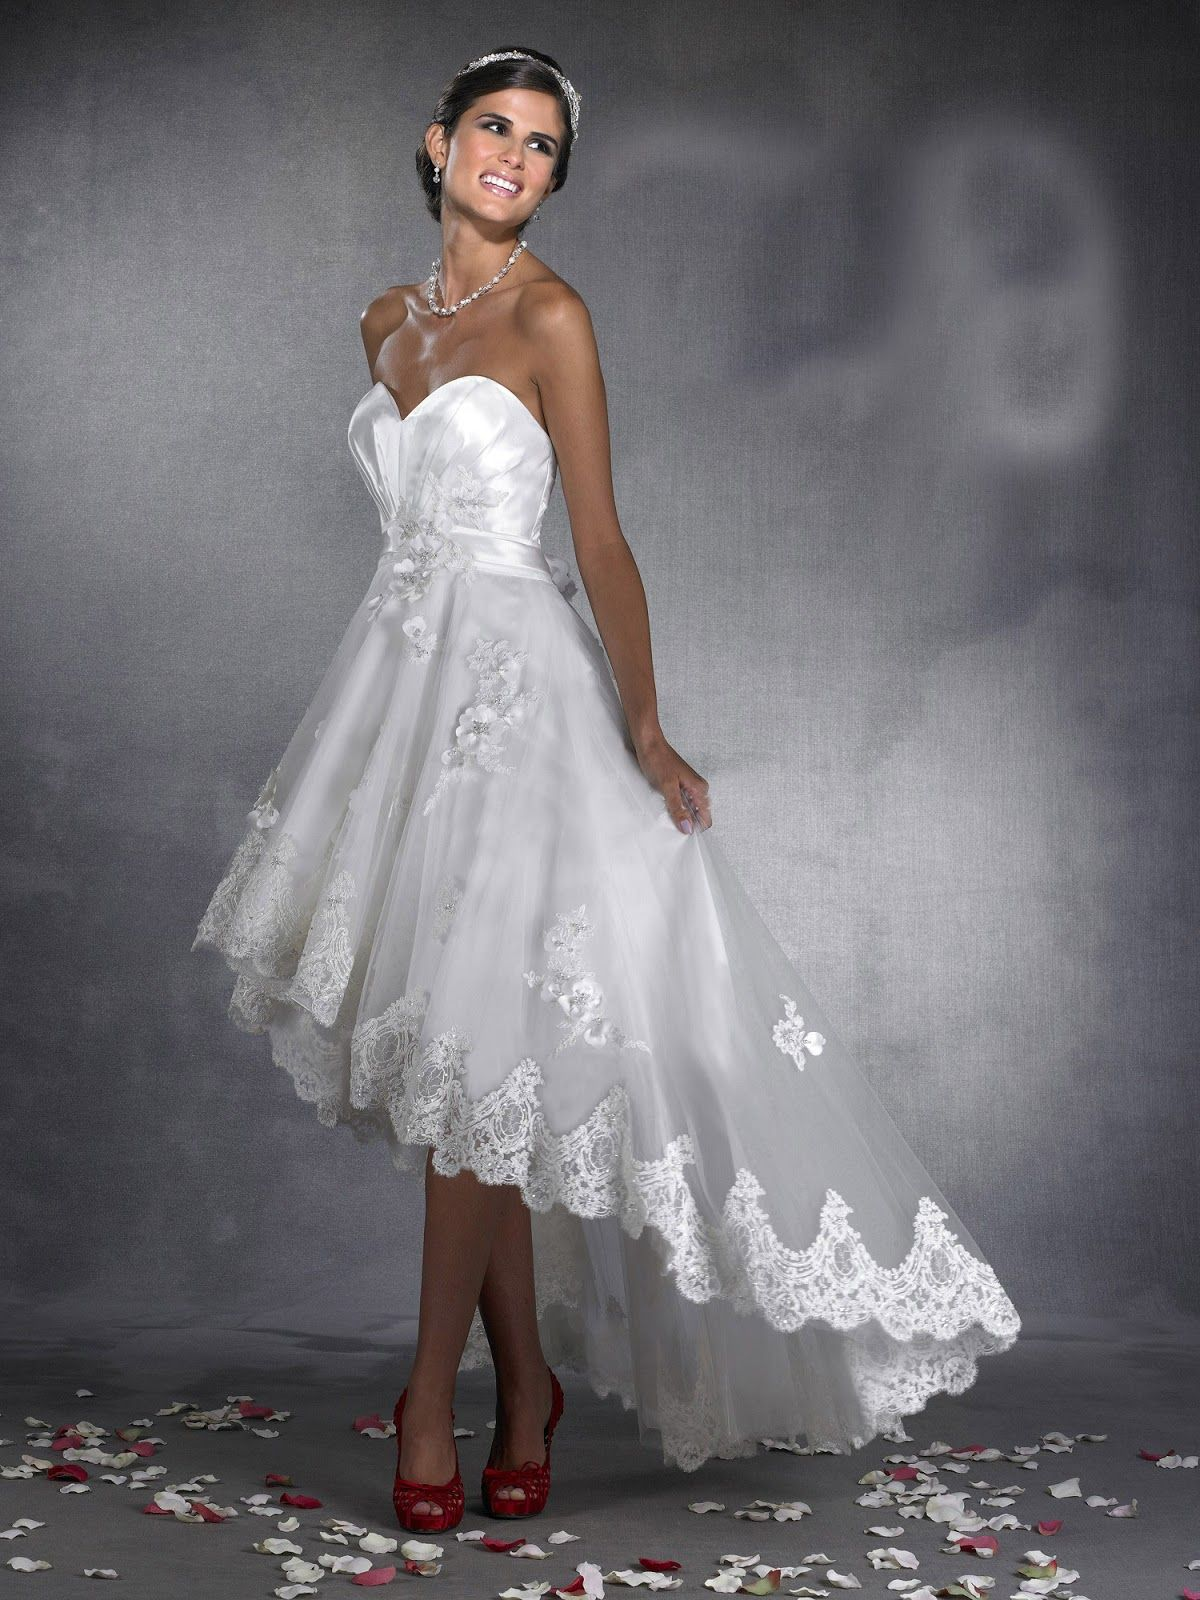 country-western-wedding-gowns.jpg (1200×1600) | I Do | Pinterest ...